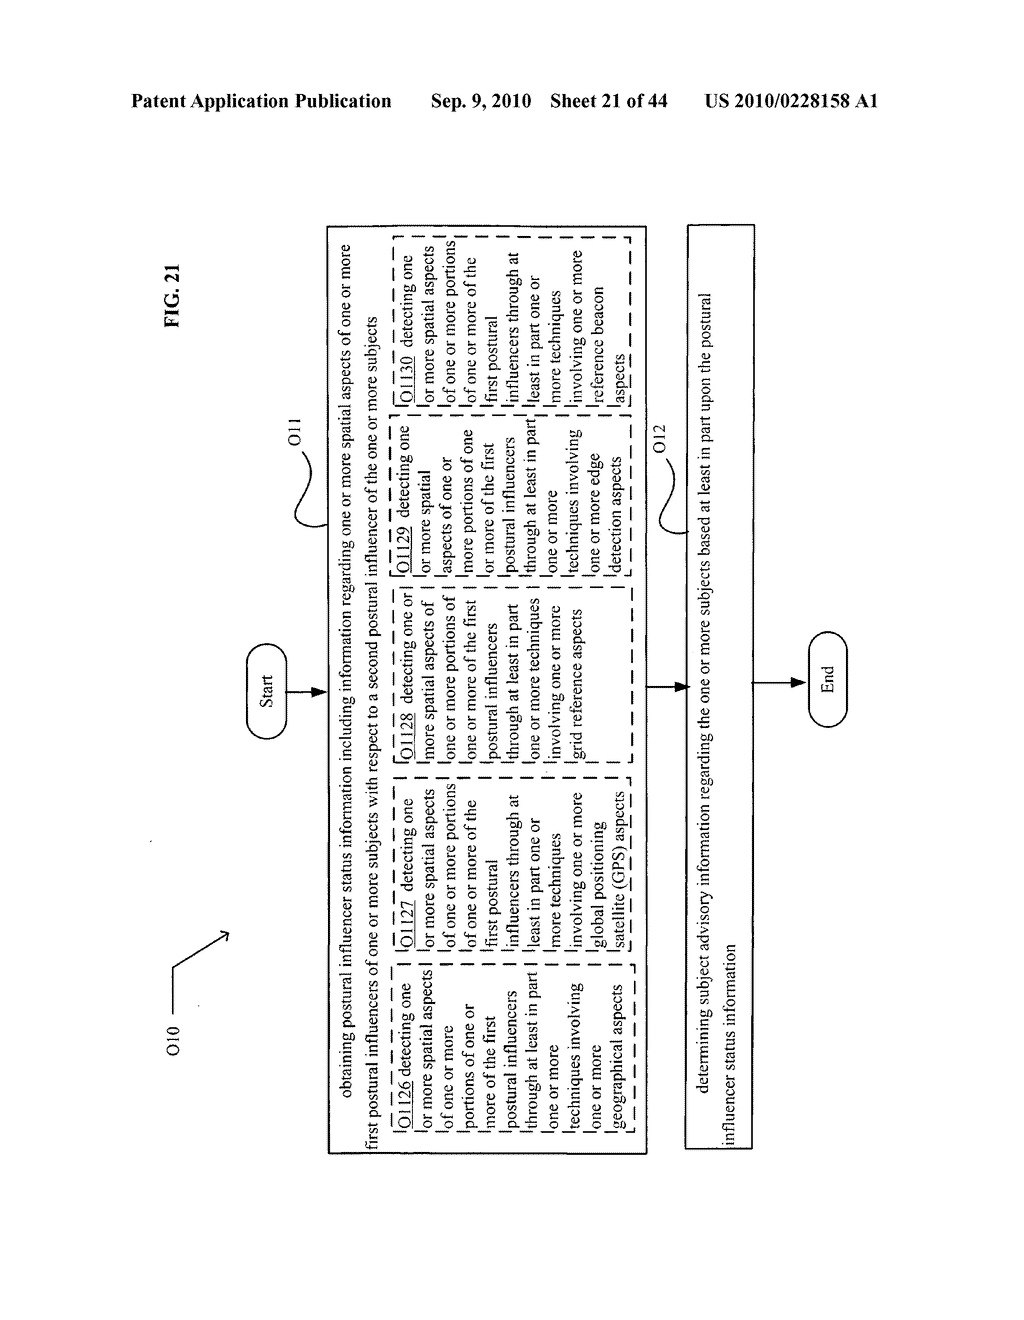 POSTURAL INFORMATION SYSTEM AND METHOD INCLUDING DEVICE LEVEL DETERMINING OF SUBJECT ADVISORY INFORMATION BASED ON SUBJECT STATUS INFORMATION AND POSTURAL INFLUENCER STATUS INFORMATION - diagram, schematic, and image 22